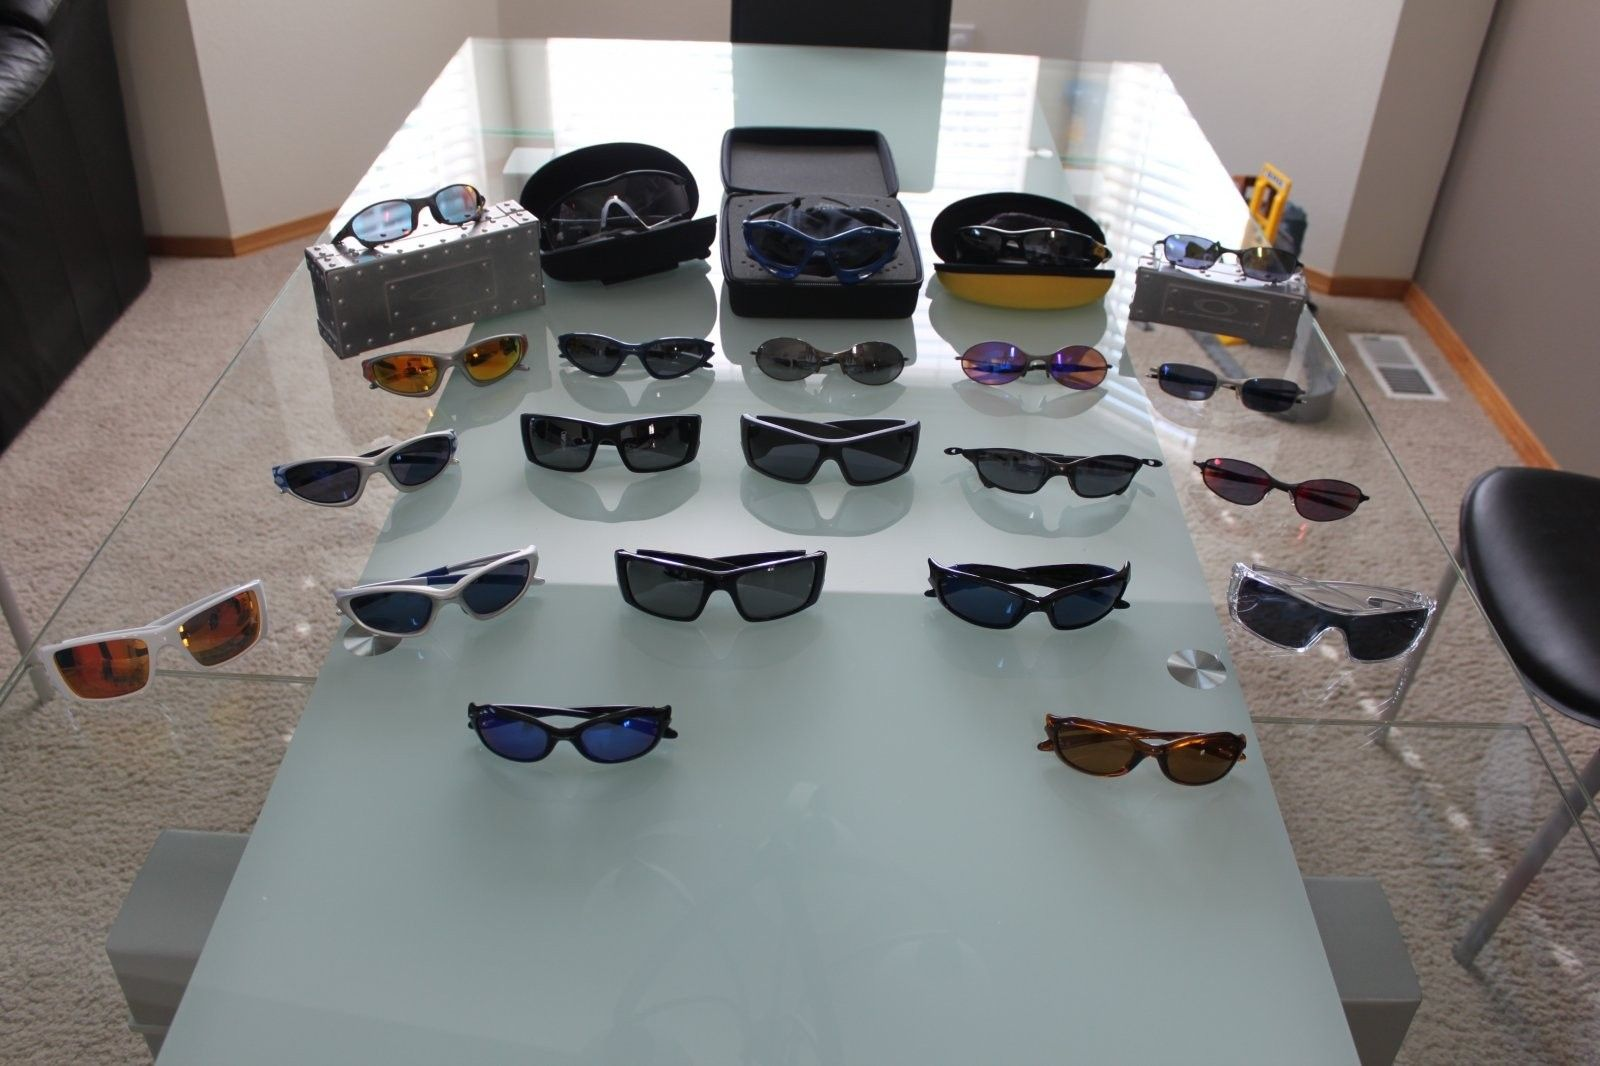 A Collection Built Over 13 Years - IMG_5575.JPG